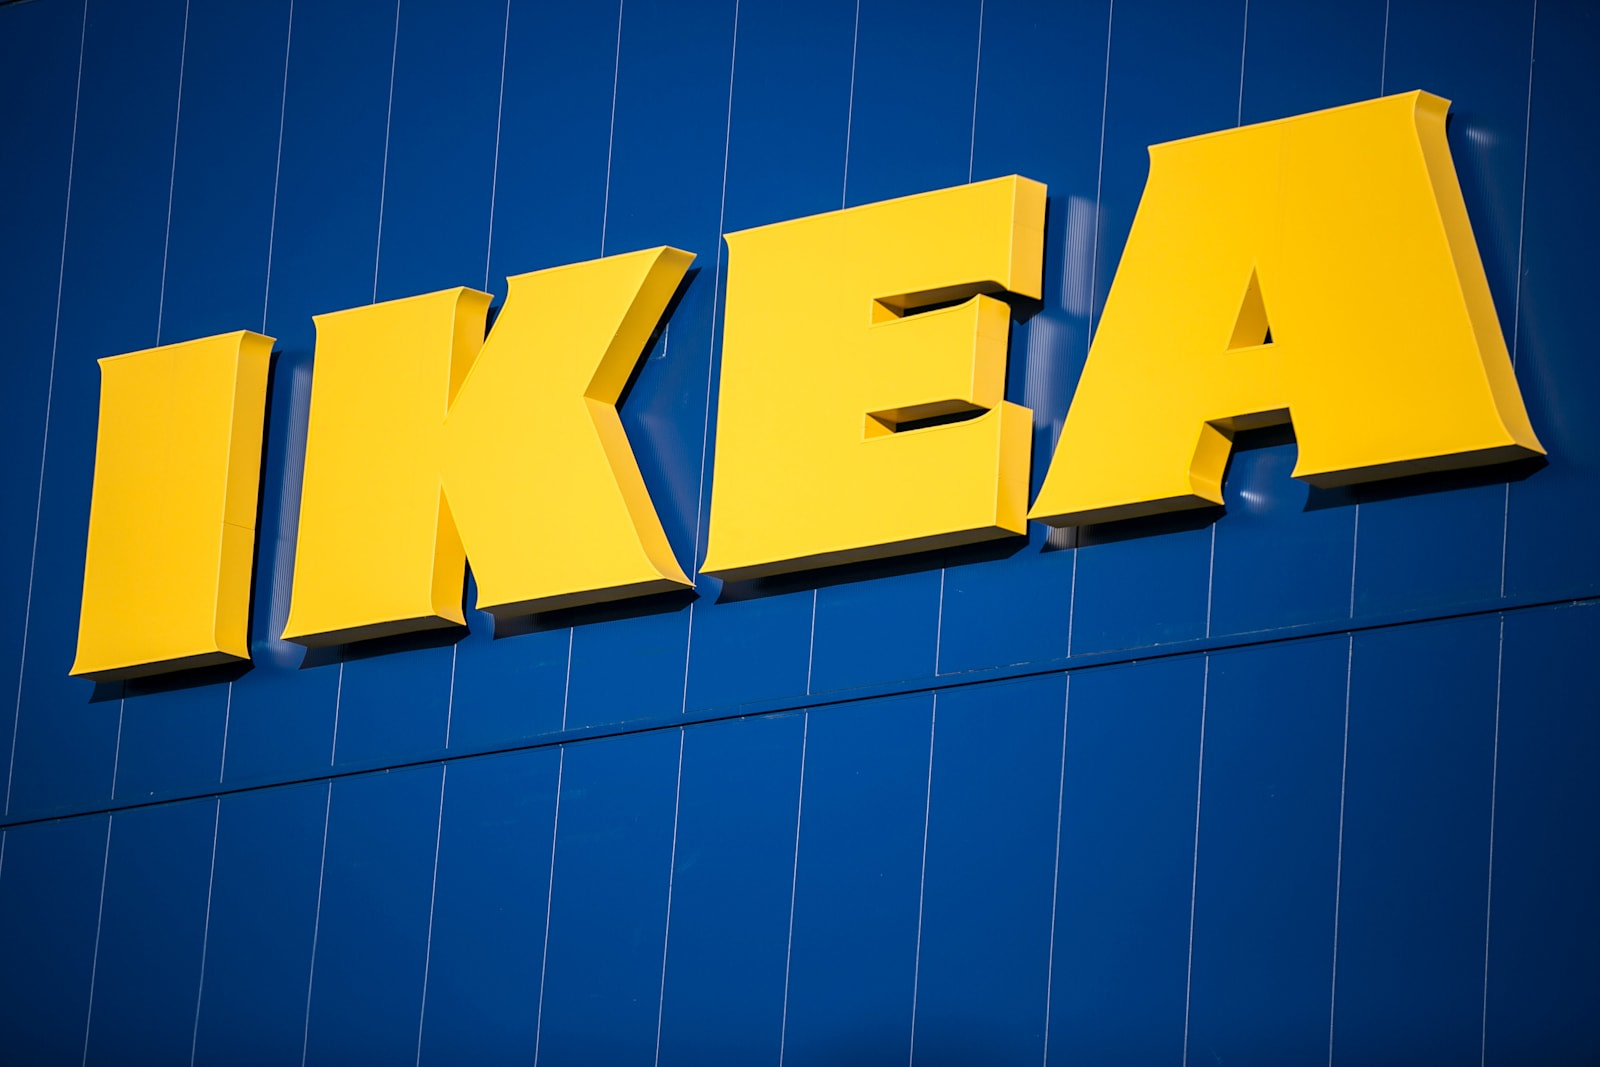 Ikea plans to improve ar shopping tools with help from apple for Ikea financing us 2017